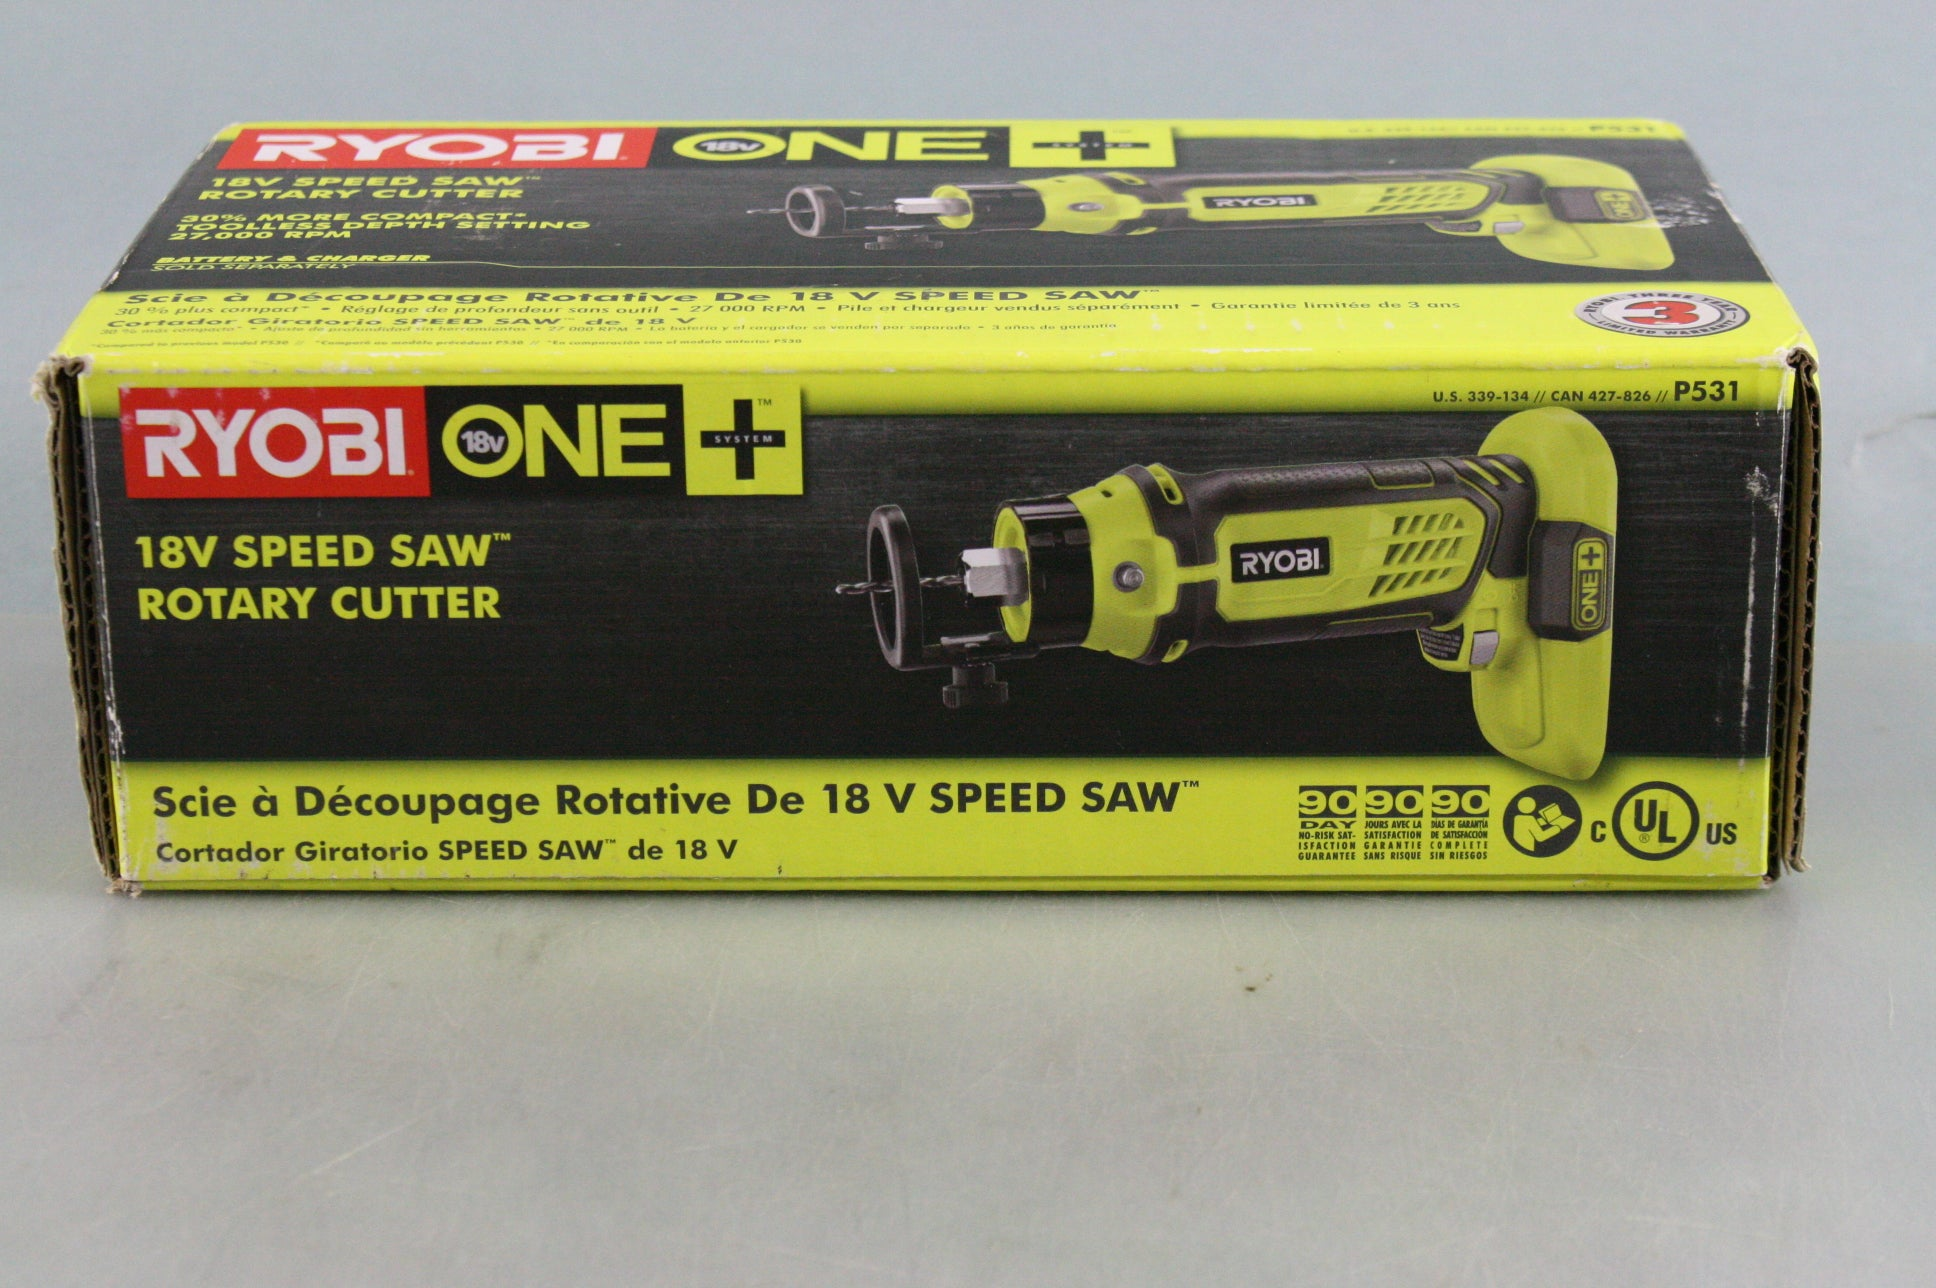 Ryobi 18-Volt ONE+ # P531 Speed Saw Rotary Cutter, 27,000 RPM (TOOL ONLY)